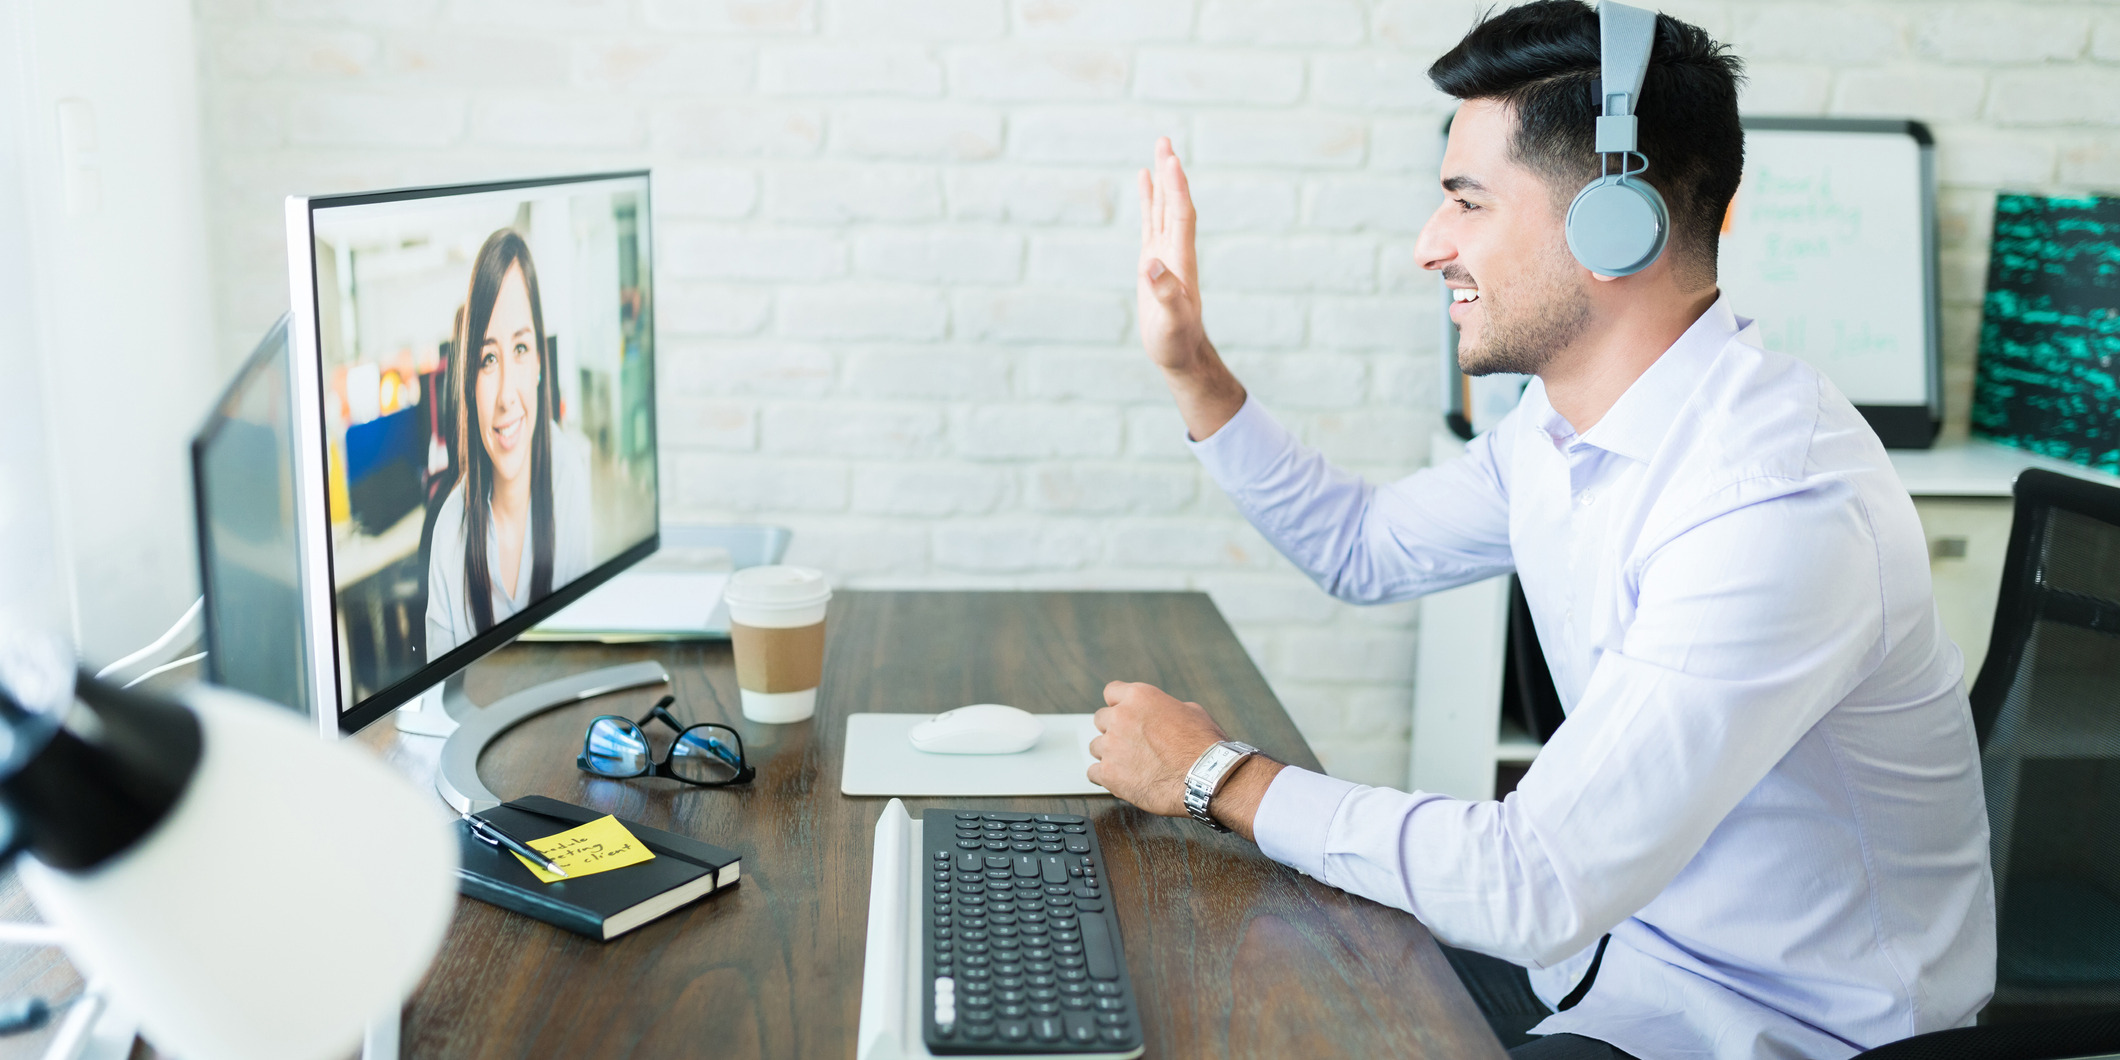 How Sales Technology Can Strengthen the Human Touch in Selling